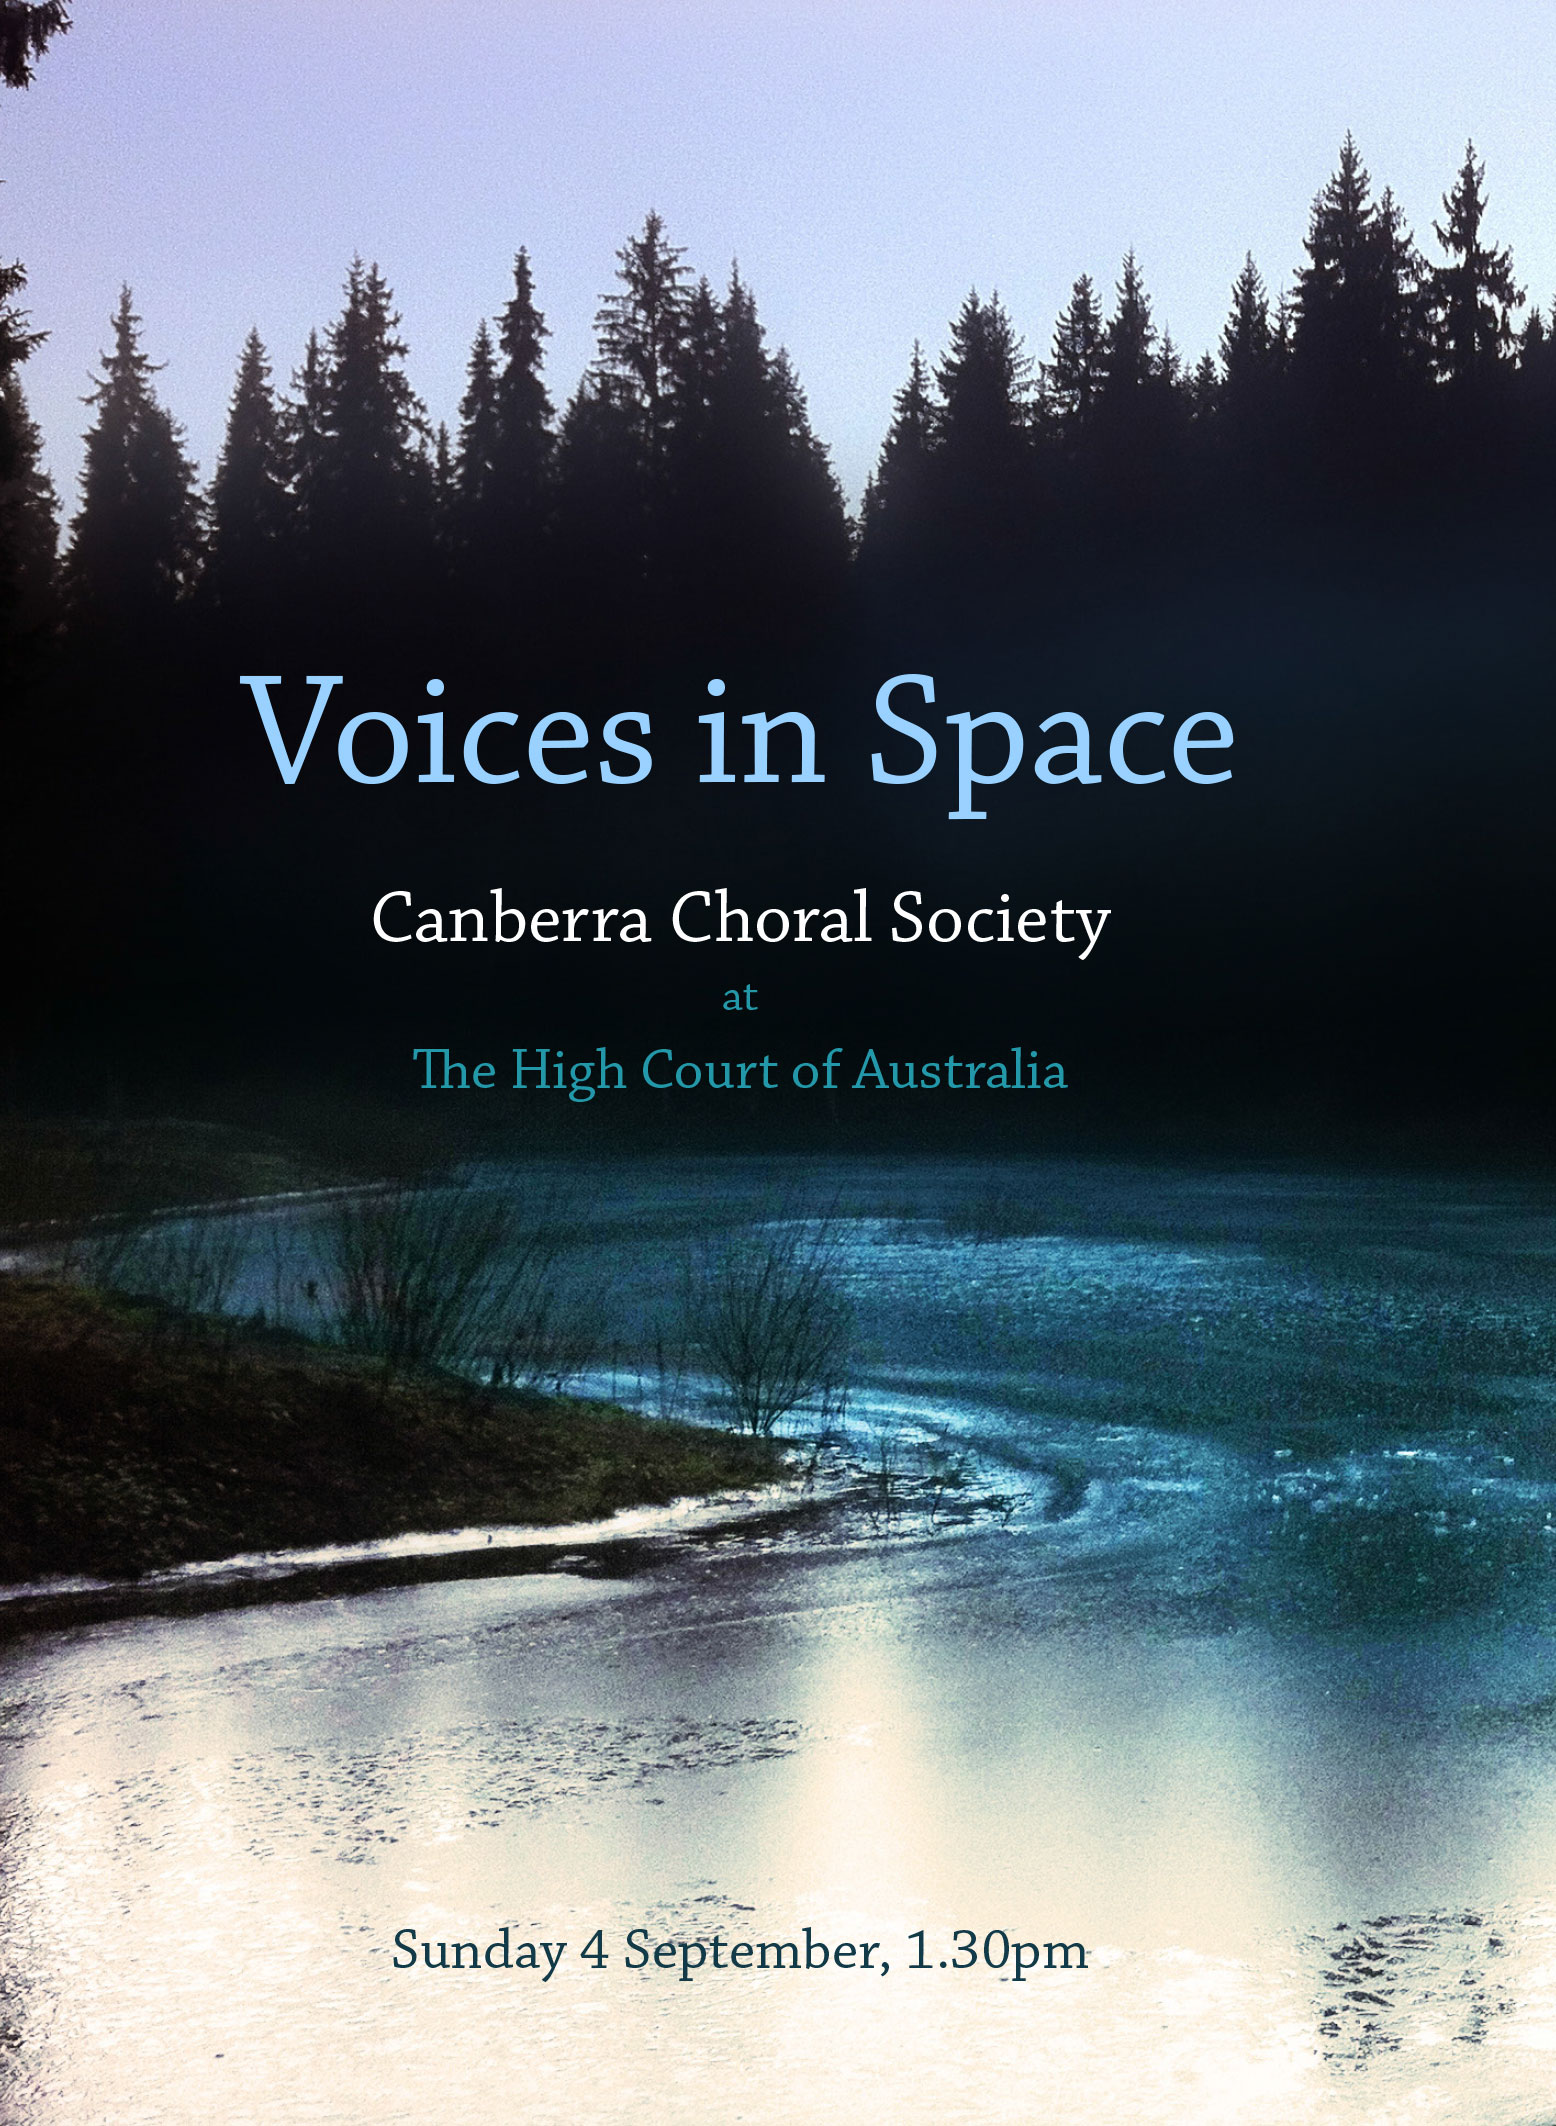 Voices in Space poster showing a river at dusk